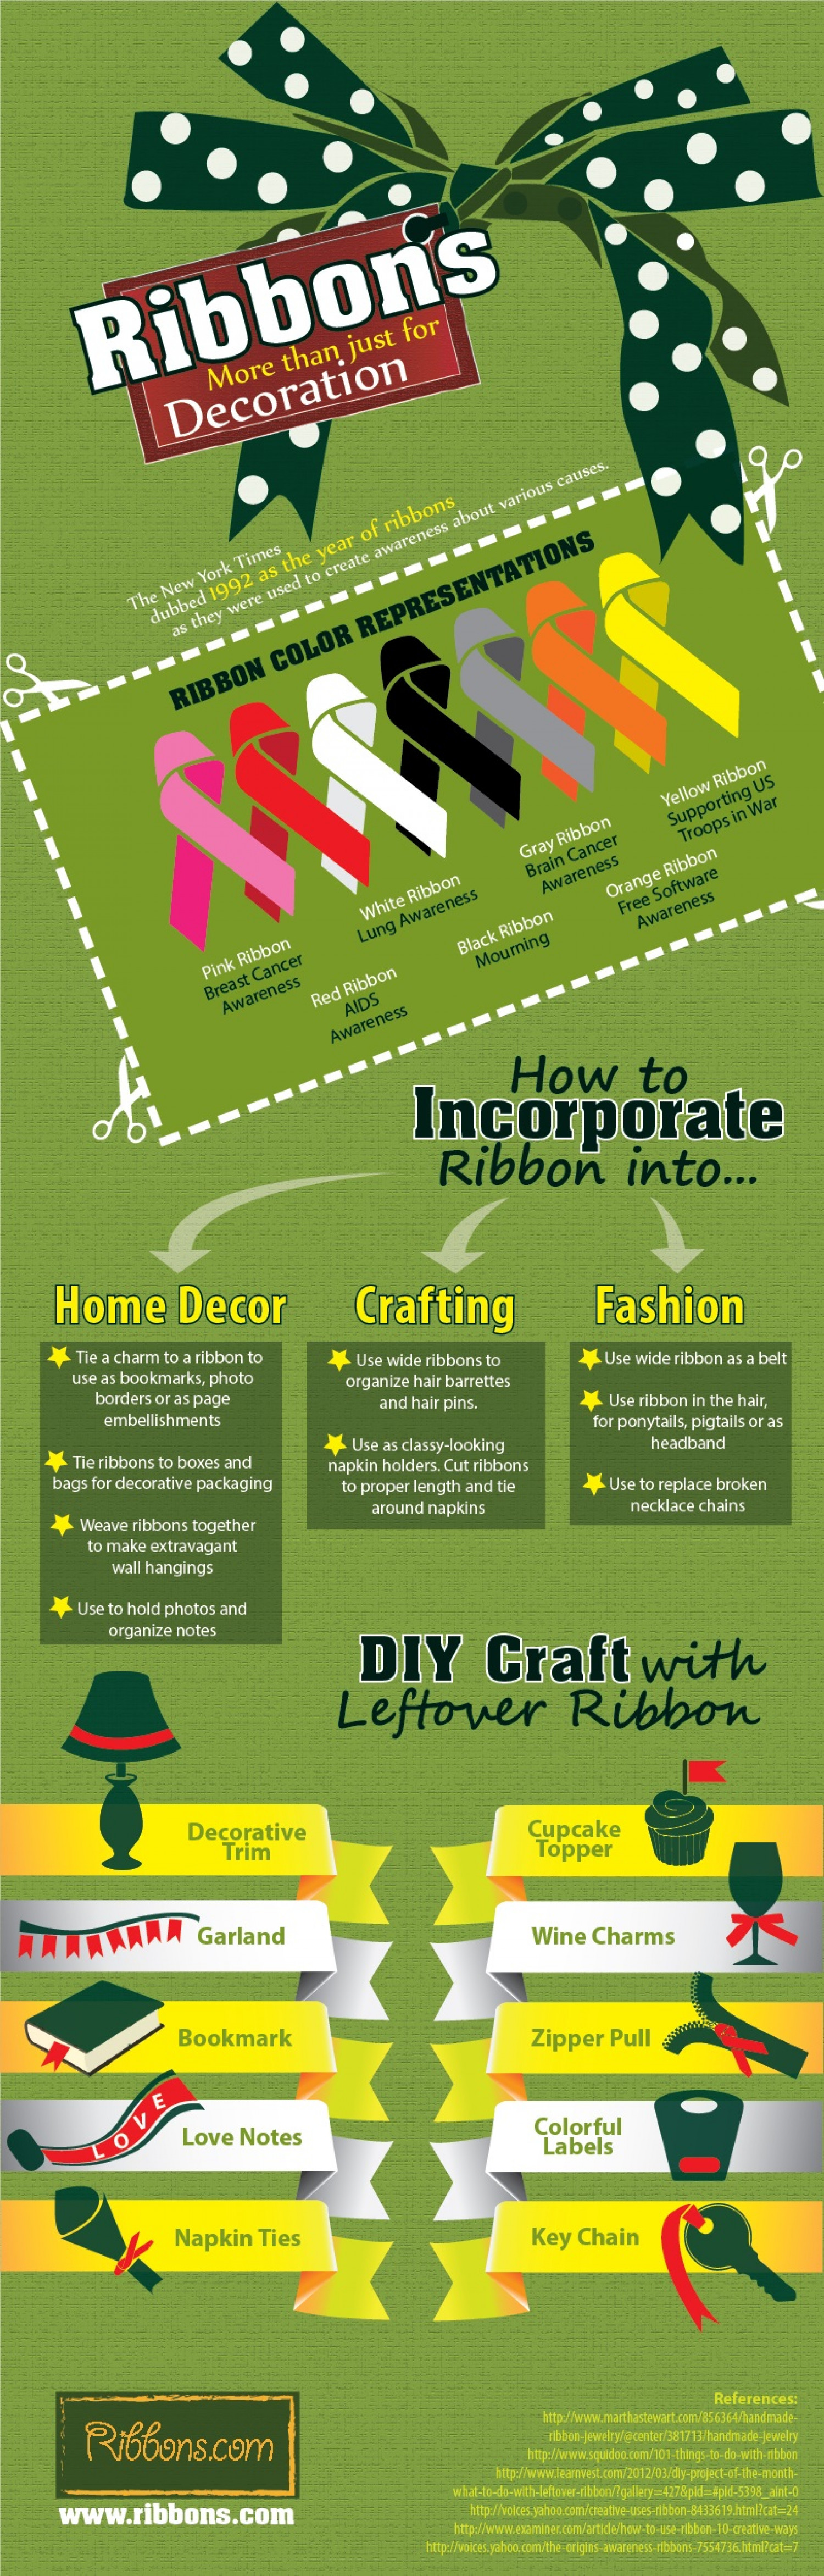 Ribbons: More Than Just for Decorations Infographic